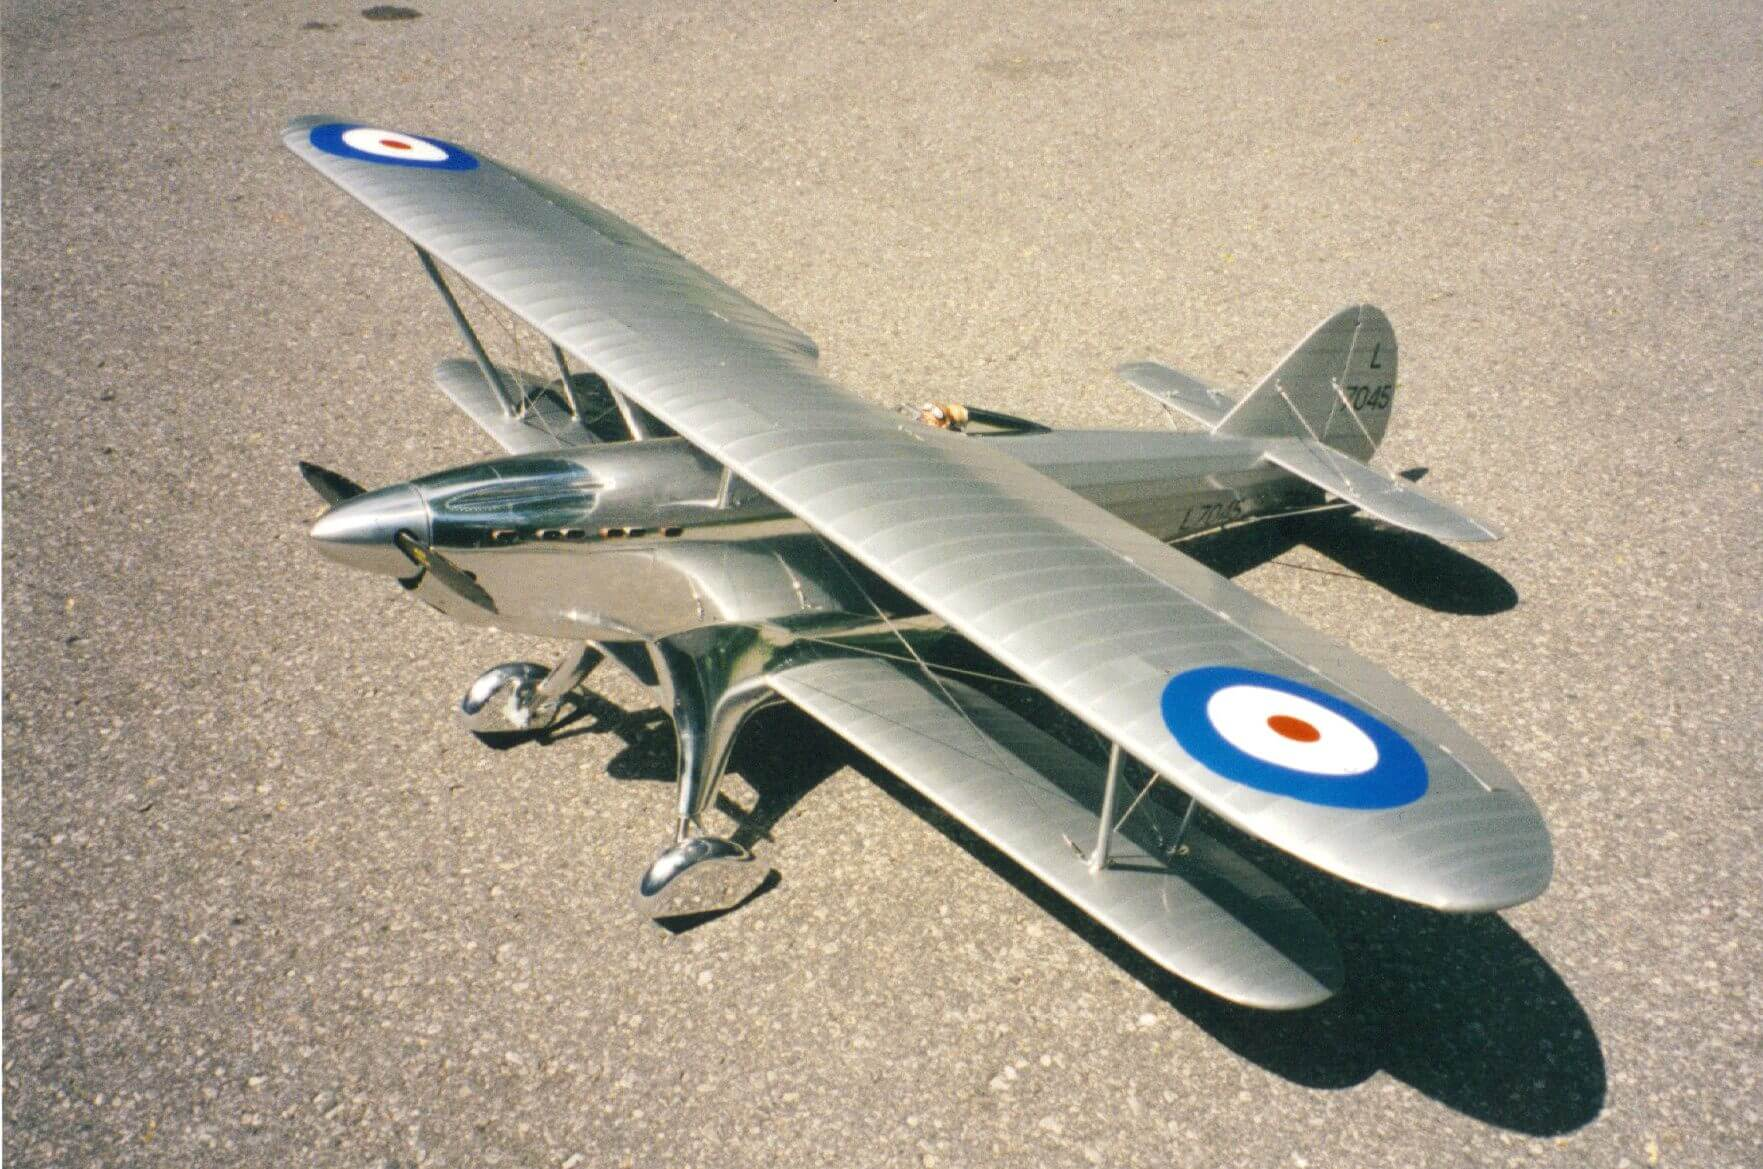 RC model of the Fairey Fantome: 1/5 full size:3/4 top view.